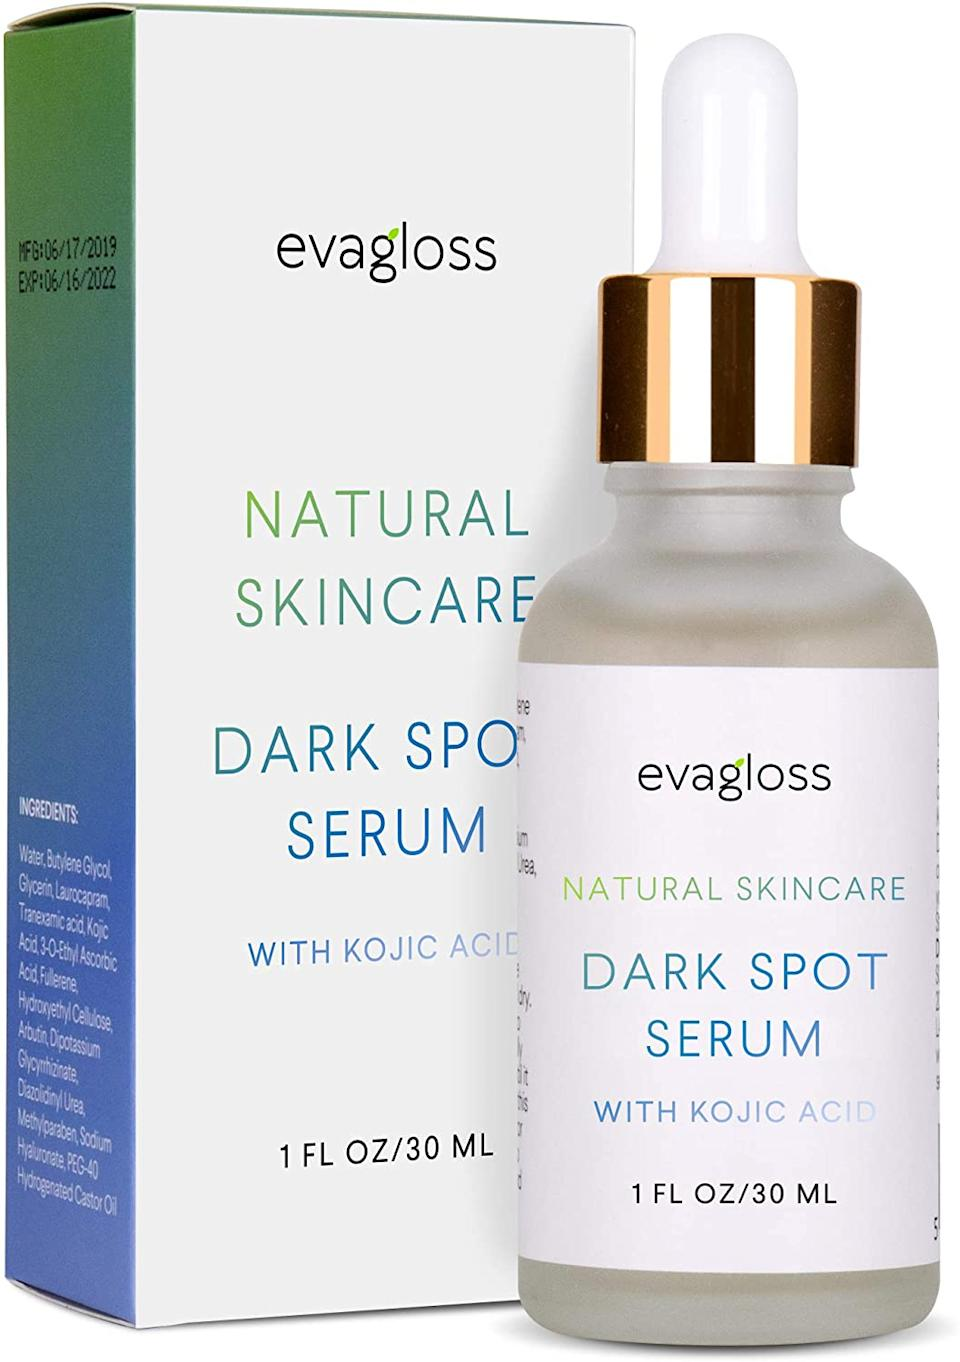 Evagloss Dark Spot Serum - Amazon.